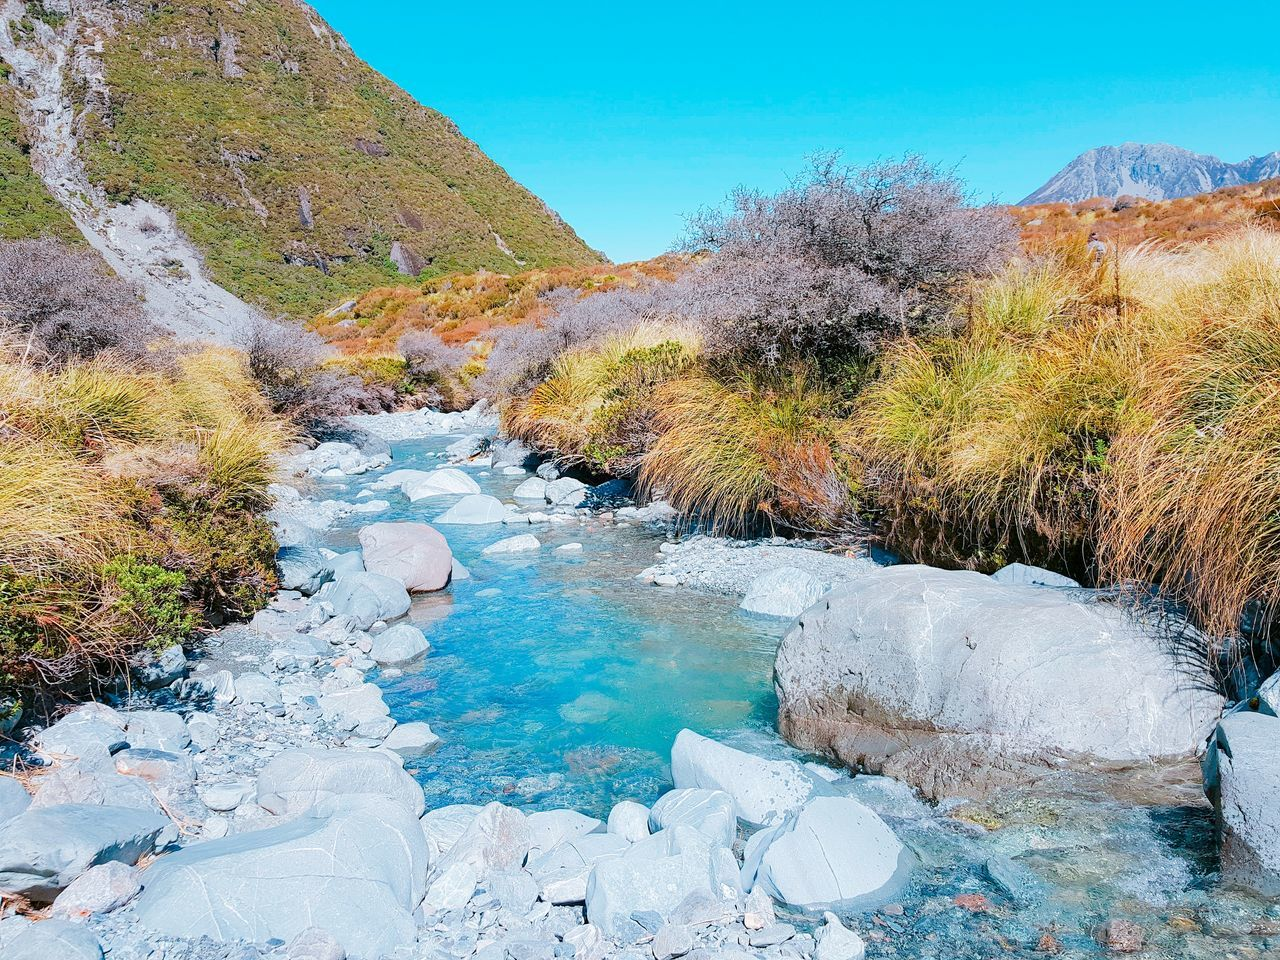 nature, beauty in nature, tranquil scene, scenics, water, outdoors, tranquility, day, river, non-urban scene, landscape, no people, tree, mountain, hot spring, clear sky, sky